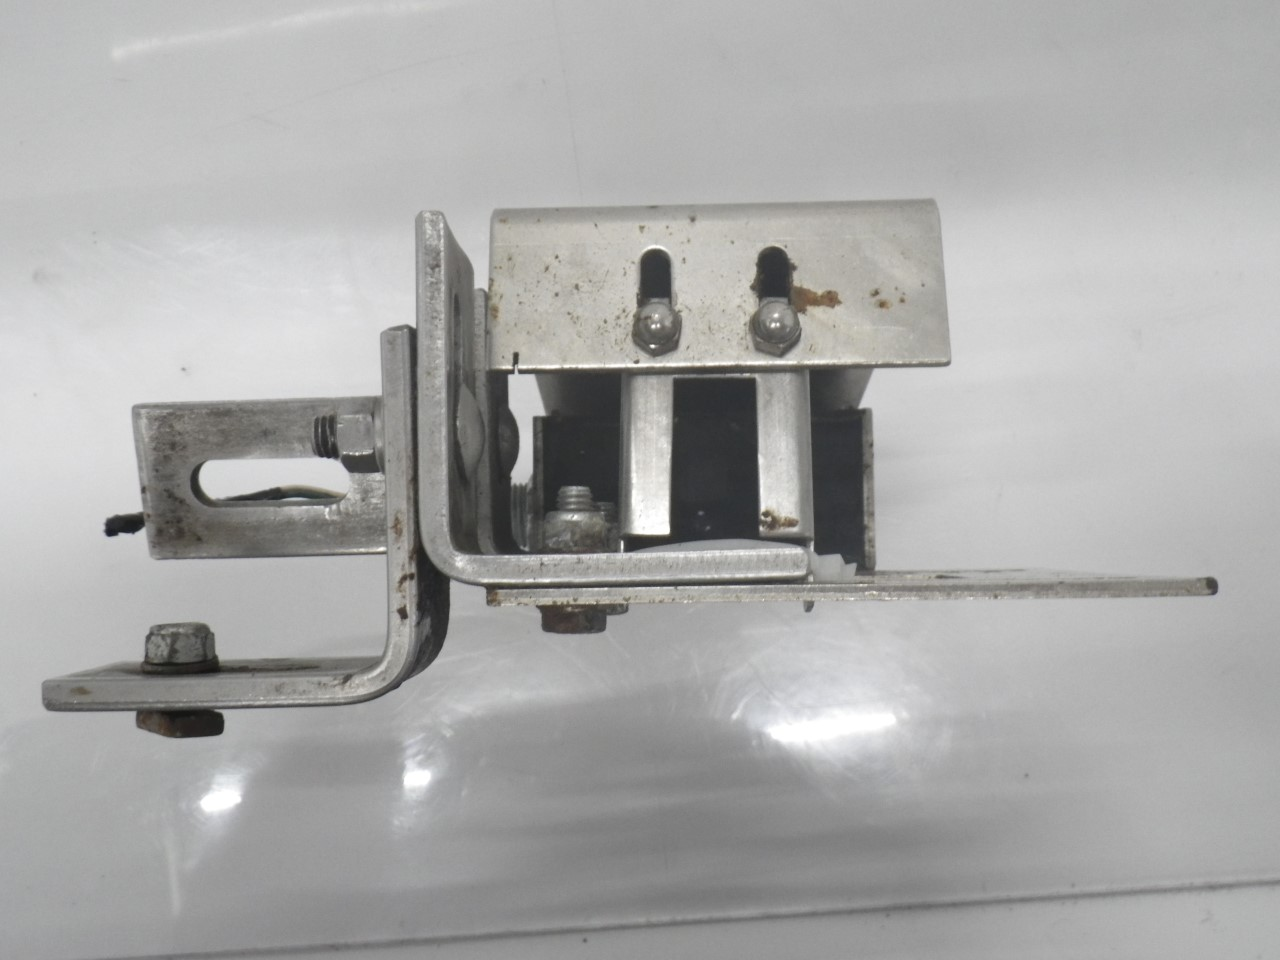 IMGP6937C-3801 C-3800A 3012Peco Electro-arm Controls forPackage Inspection(Used Tested) (11)